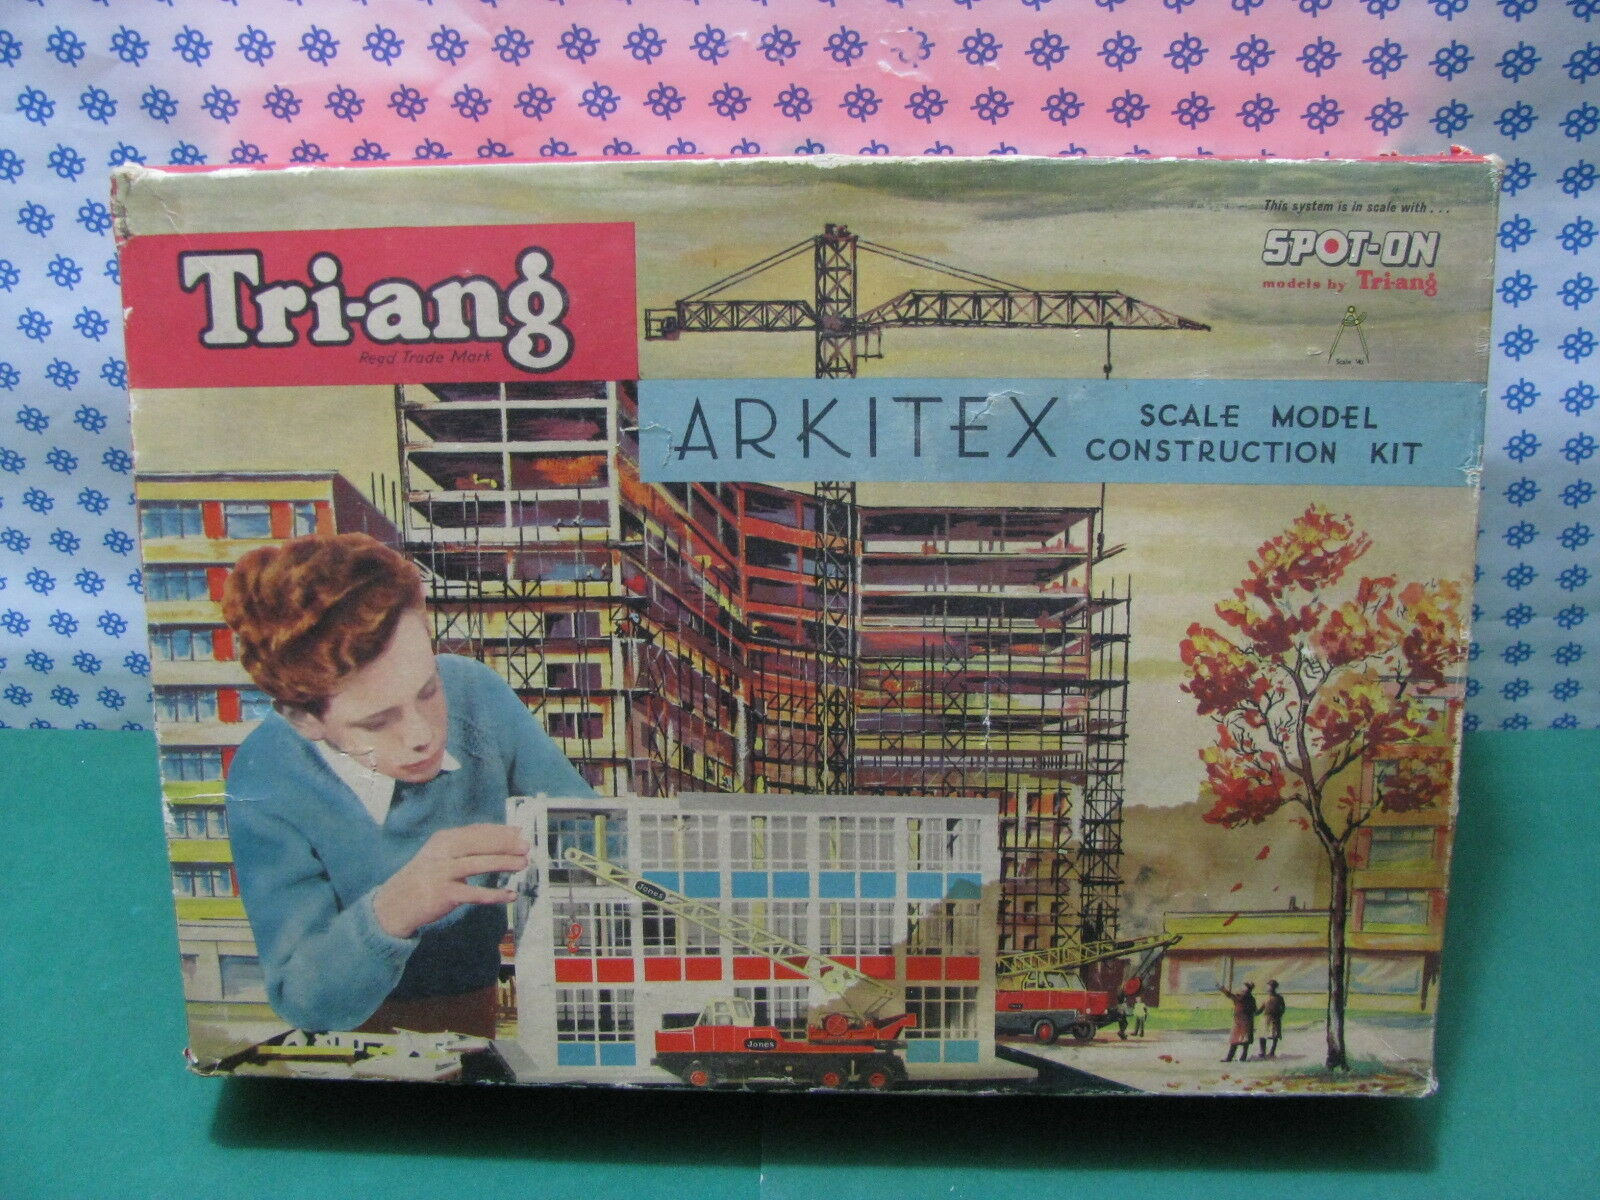 Spot-On by Tri-Ang Set N°2 - Arkitex Scale Model Construction Kit - 1 42 MIB